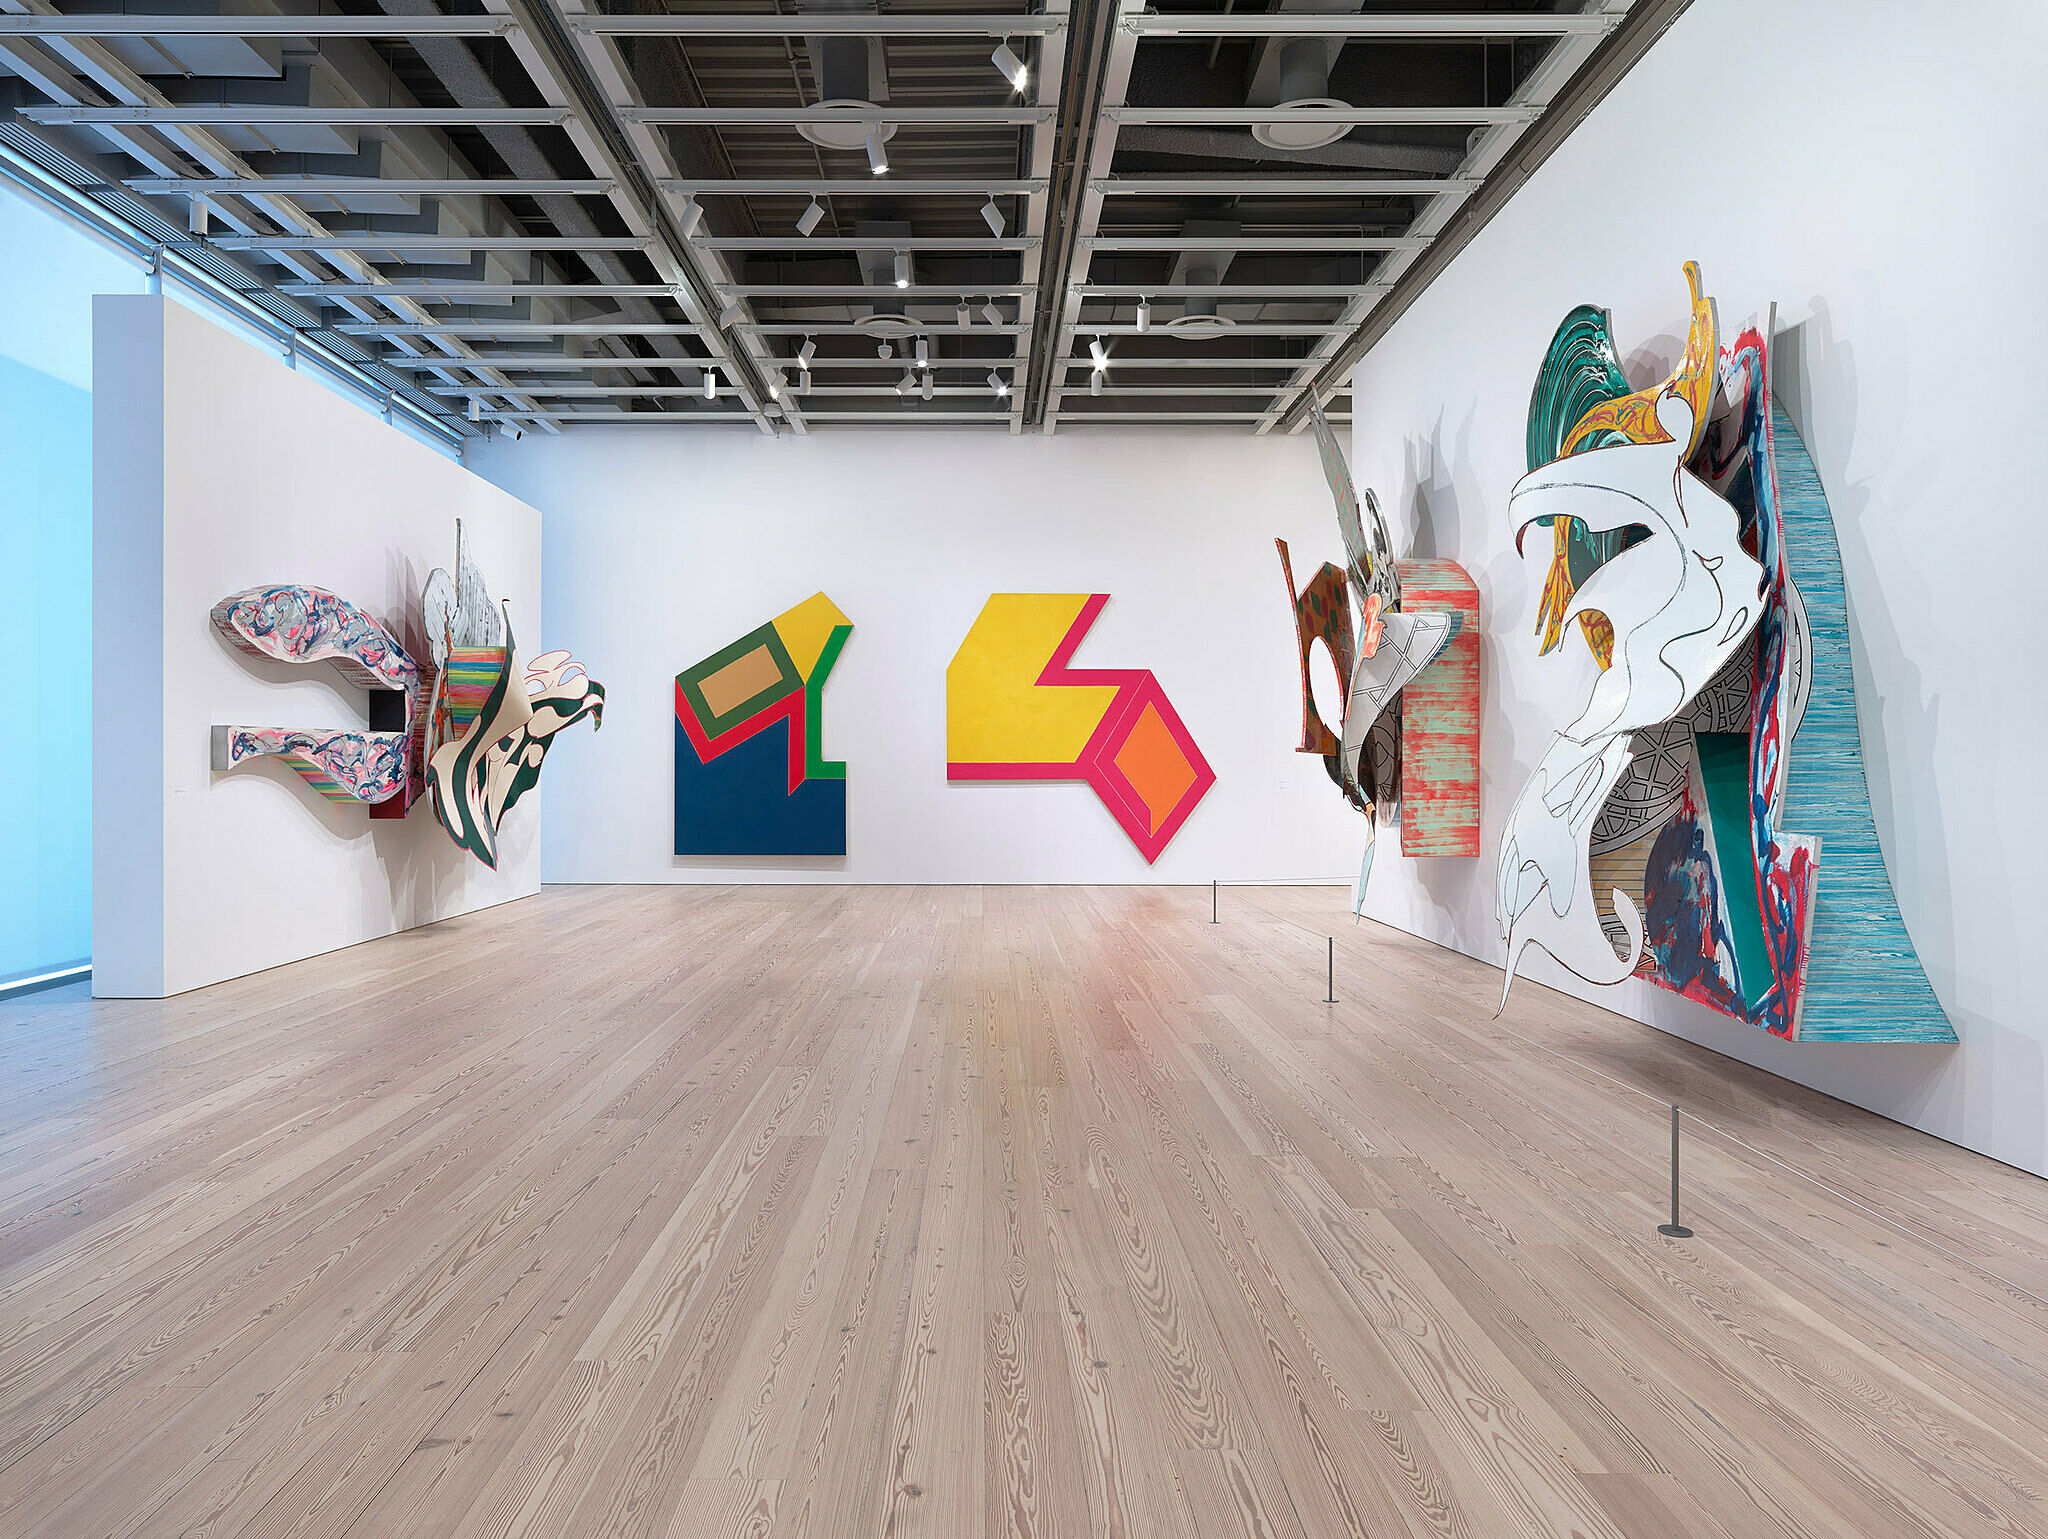 Five colorful sculptures line the walls of the gallery.